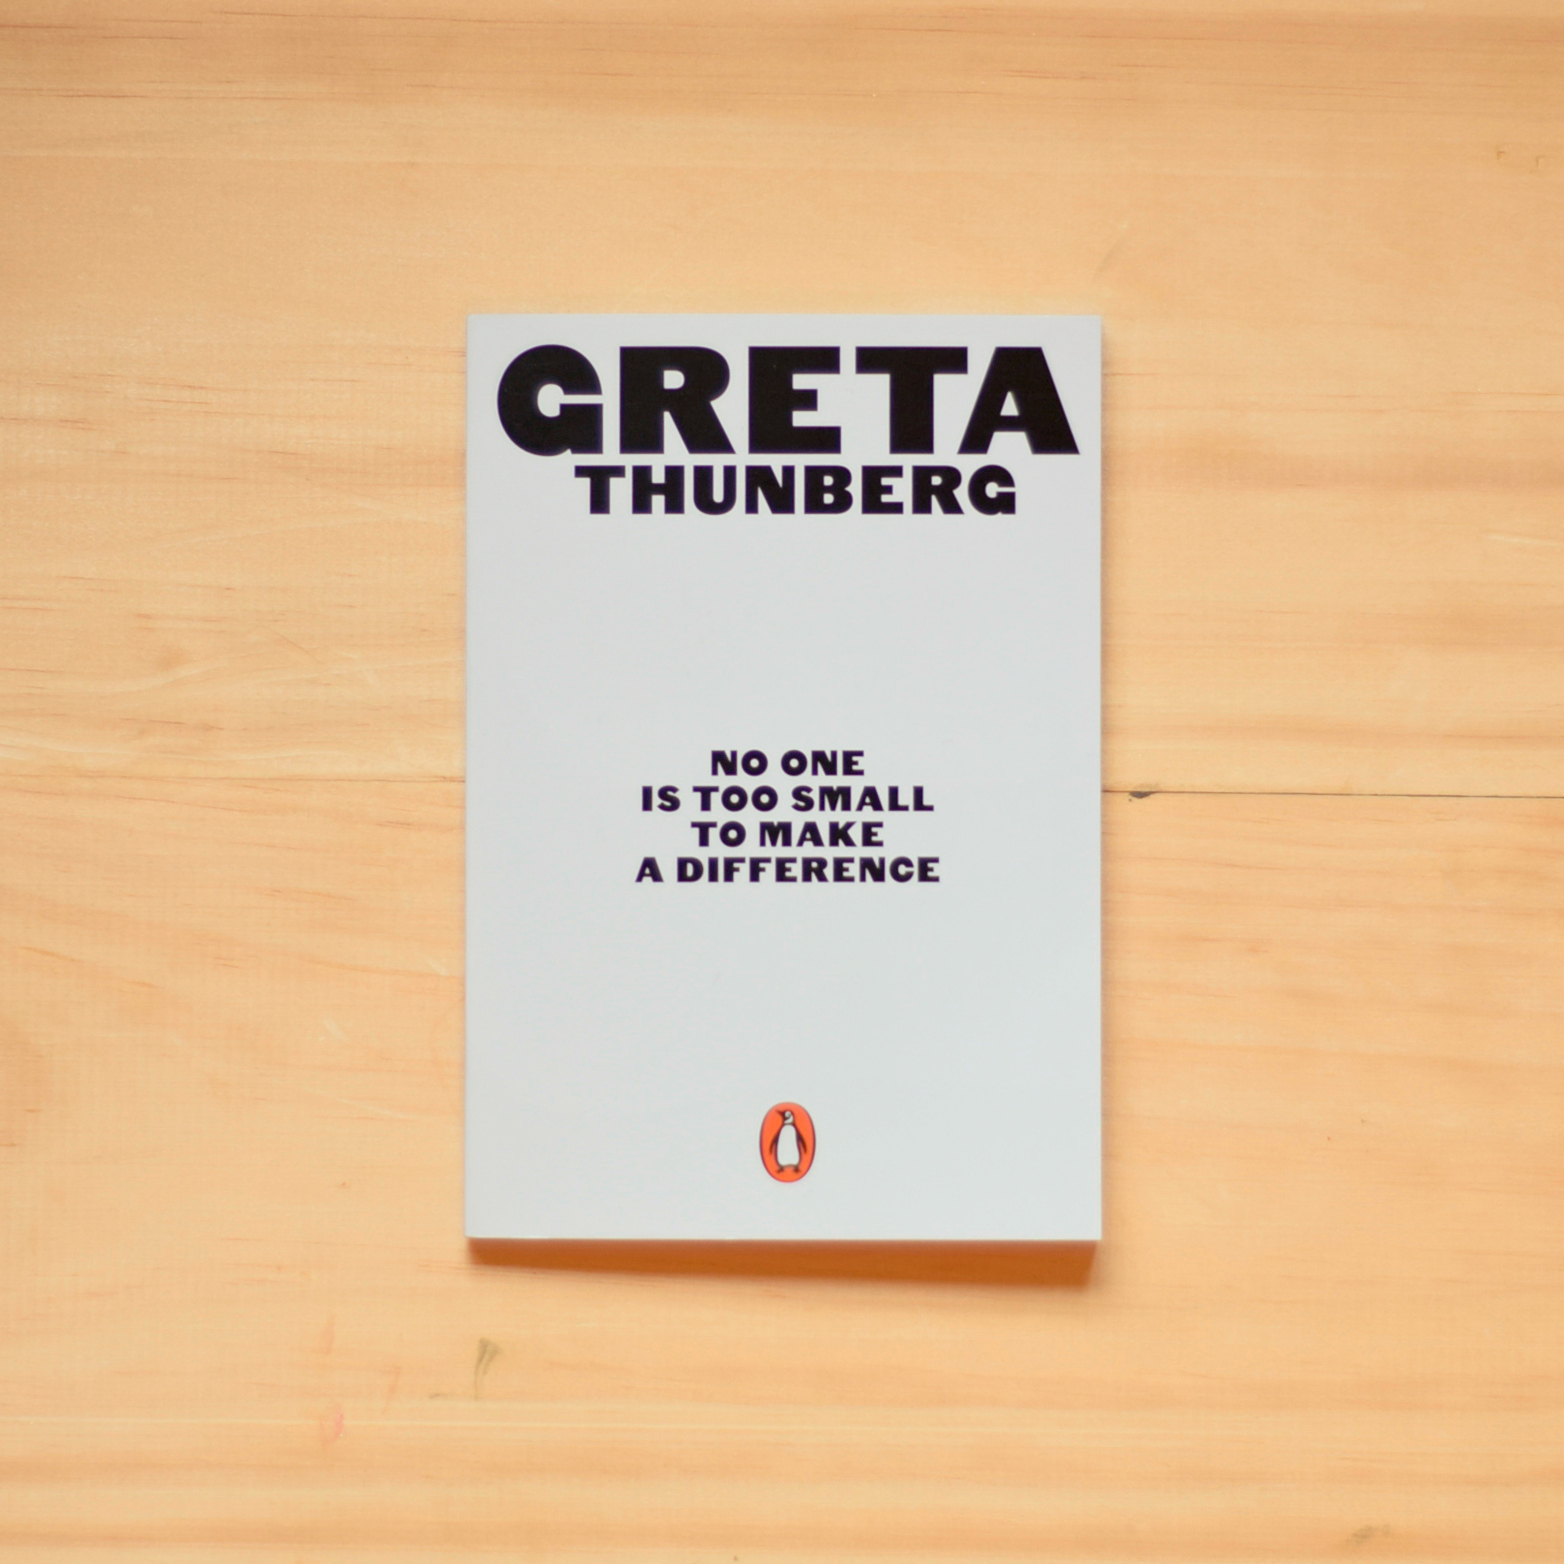 "#1: No One is Too Small to Make a Difference - By Greta ThunbergIf you read one book this summer, this year, make it No One is Too Small to Make a Difference. This little paperback collects 16-year-old climate activist Greta Thunberg's speeches. She includes a lot of information we should all already be well aware of, but the strength of her words are those passages that give you goose bumps: ""I don't want your hope. I don't want you to be hopeful. I want you to panic. I want you to feel the fear I feel every day. And then I want you to act. I want you to act as you would in a crisis. I want you to act as if our house is on fire. Because it is""."